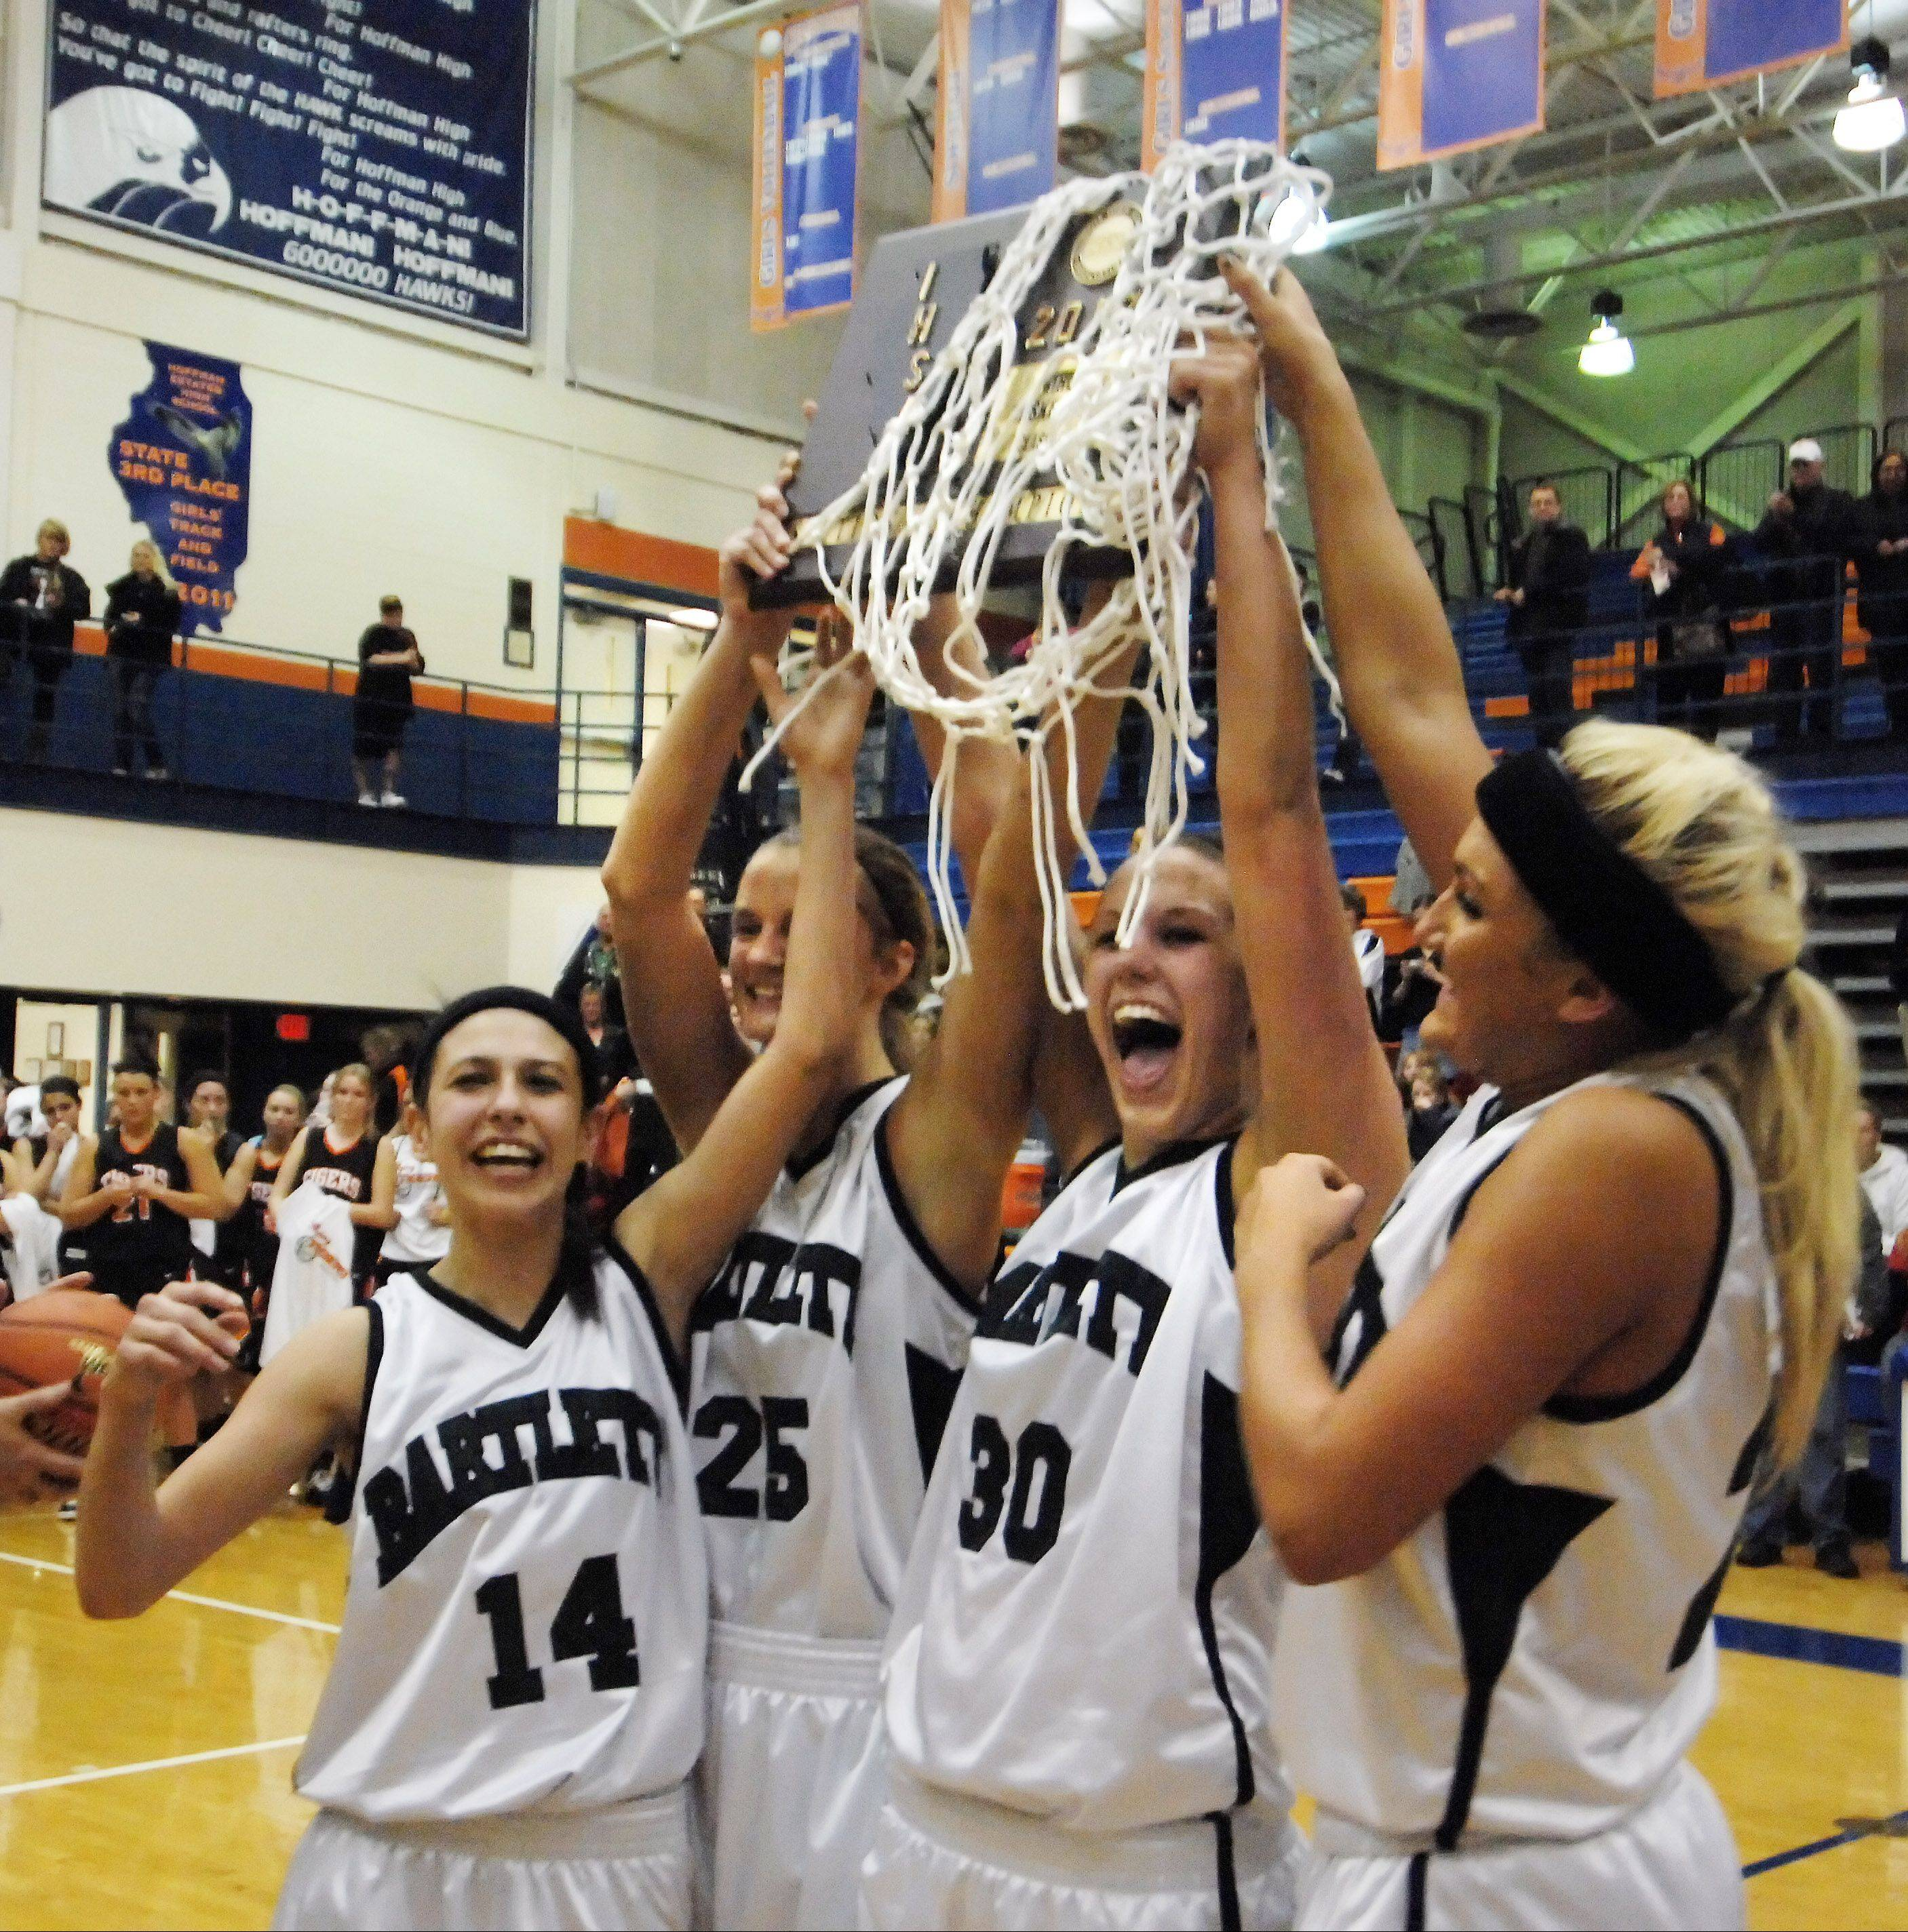 Bartlett's Janessa Baker, left, Kristin Conniff, Lisa Palmer and Haley Videckis, right, hold the trophy after defeating Wheaton Warrenville South 54-51 in overtime in Thursday's Class 4A Hoffman Estates sectional championship game.